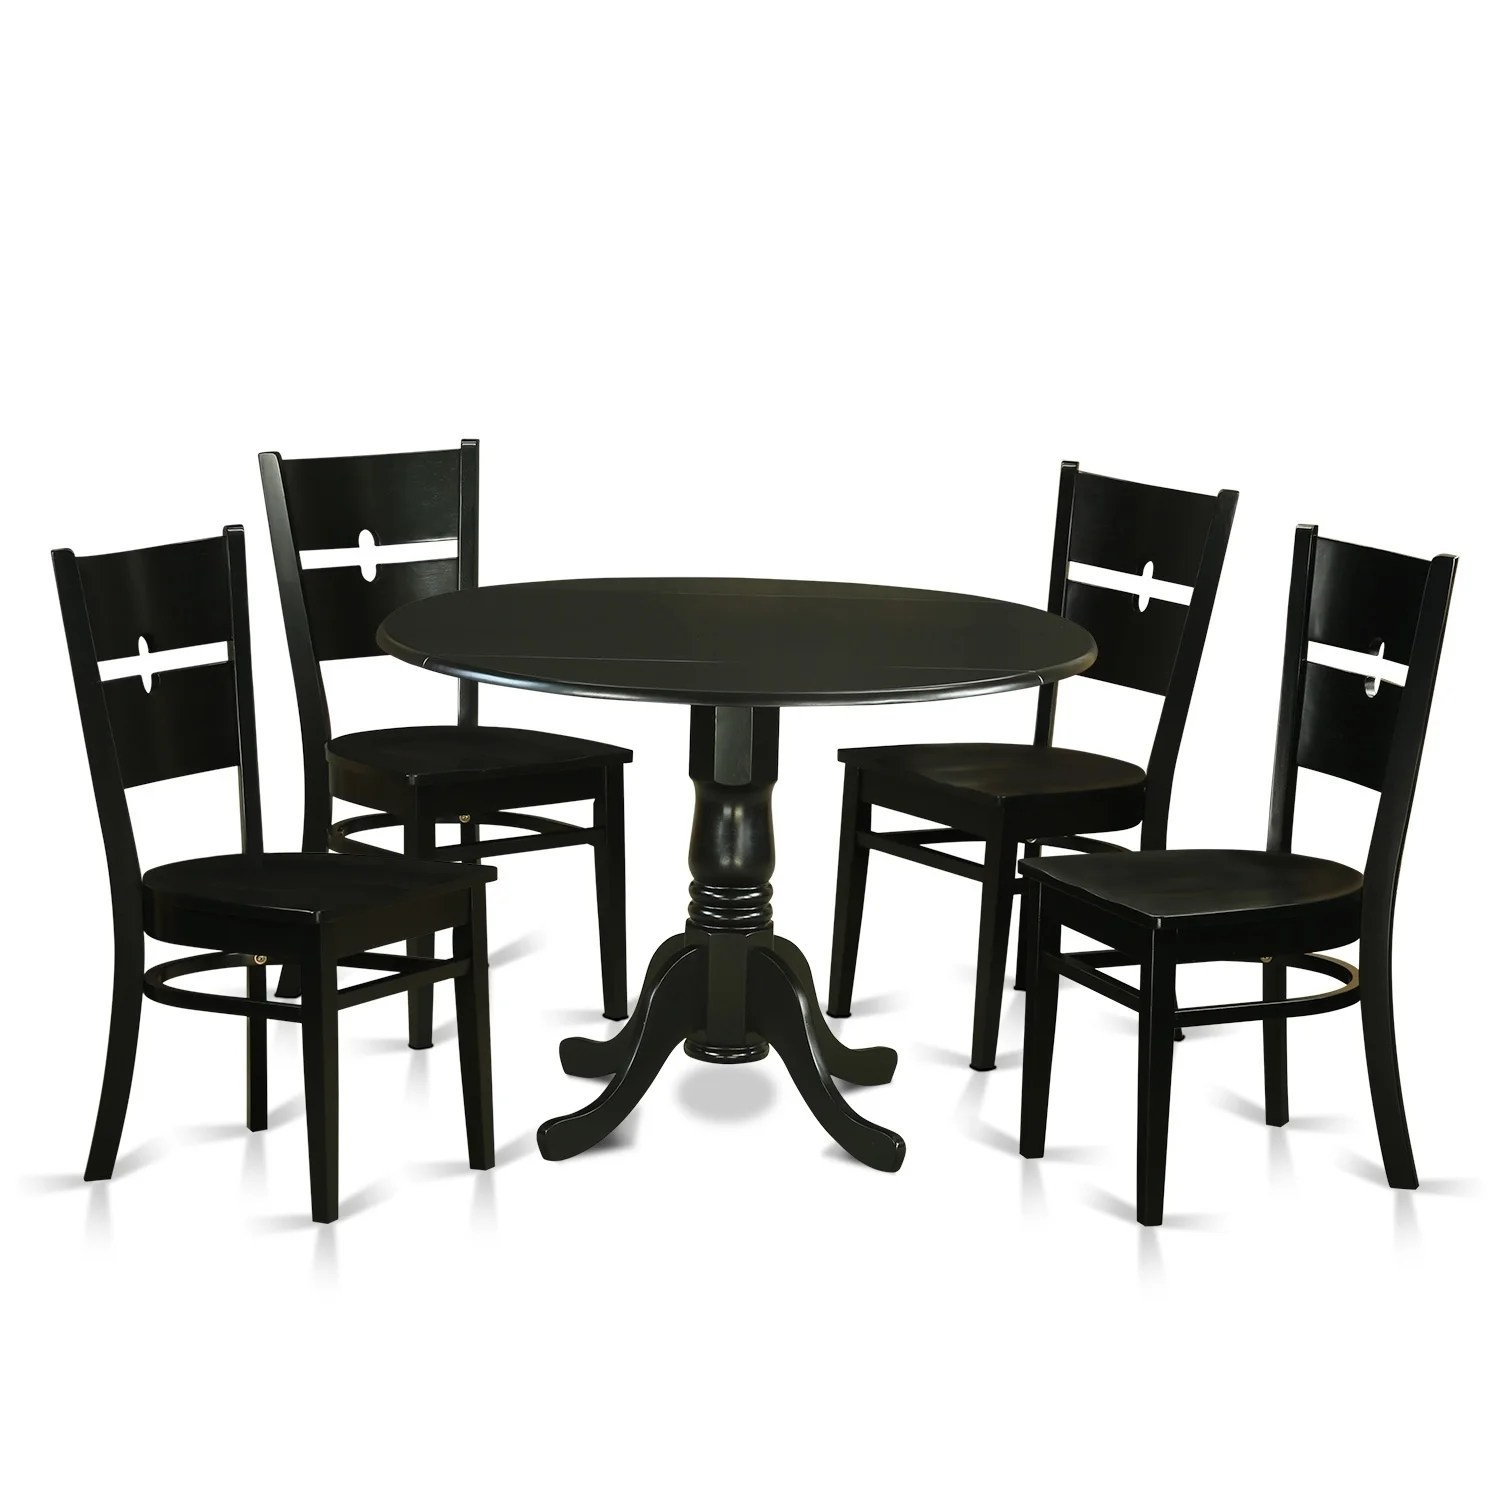 Set Of 4 Kitchen Chairs Dlro5 W 5 Pc Kitchen Set For 4 Dining Table And 4 Kitchen Chairs